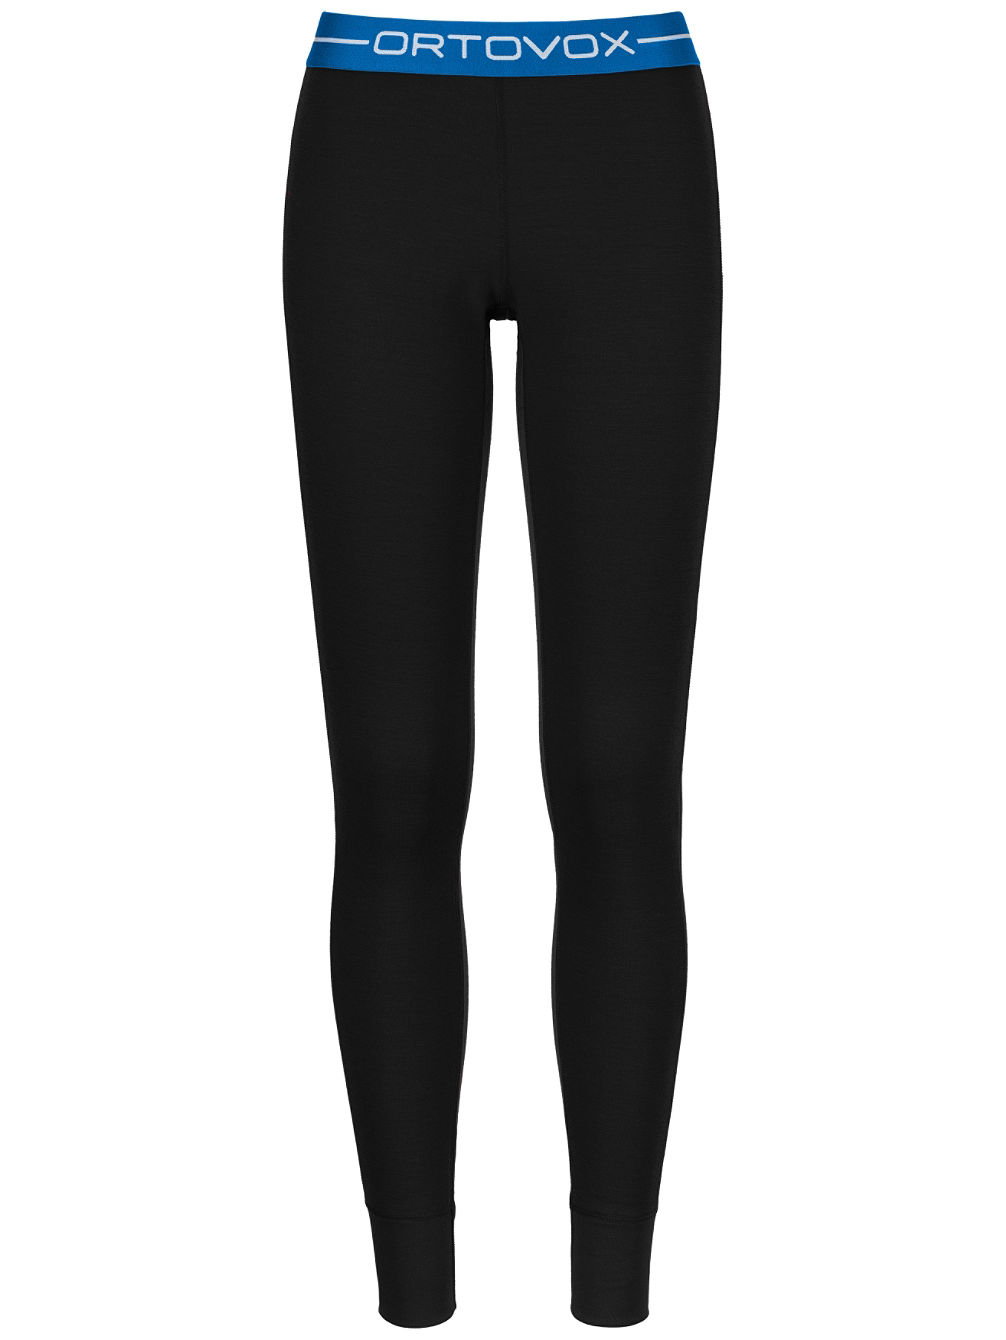 Merino S-Soft 210 Tech Pants